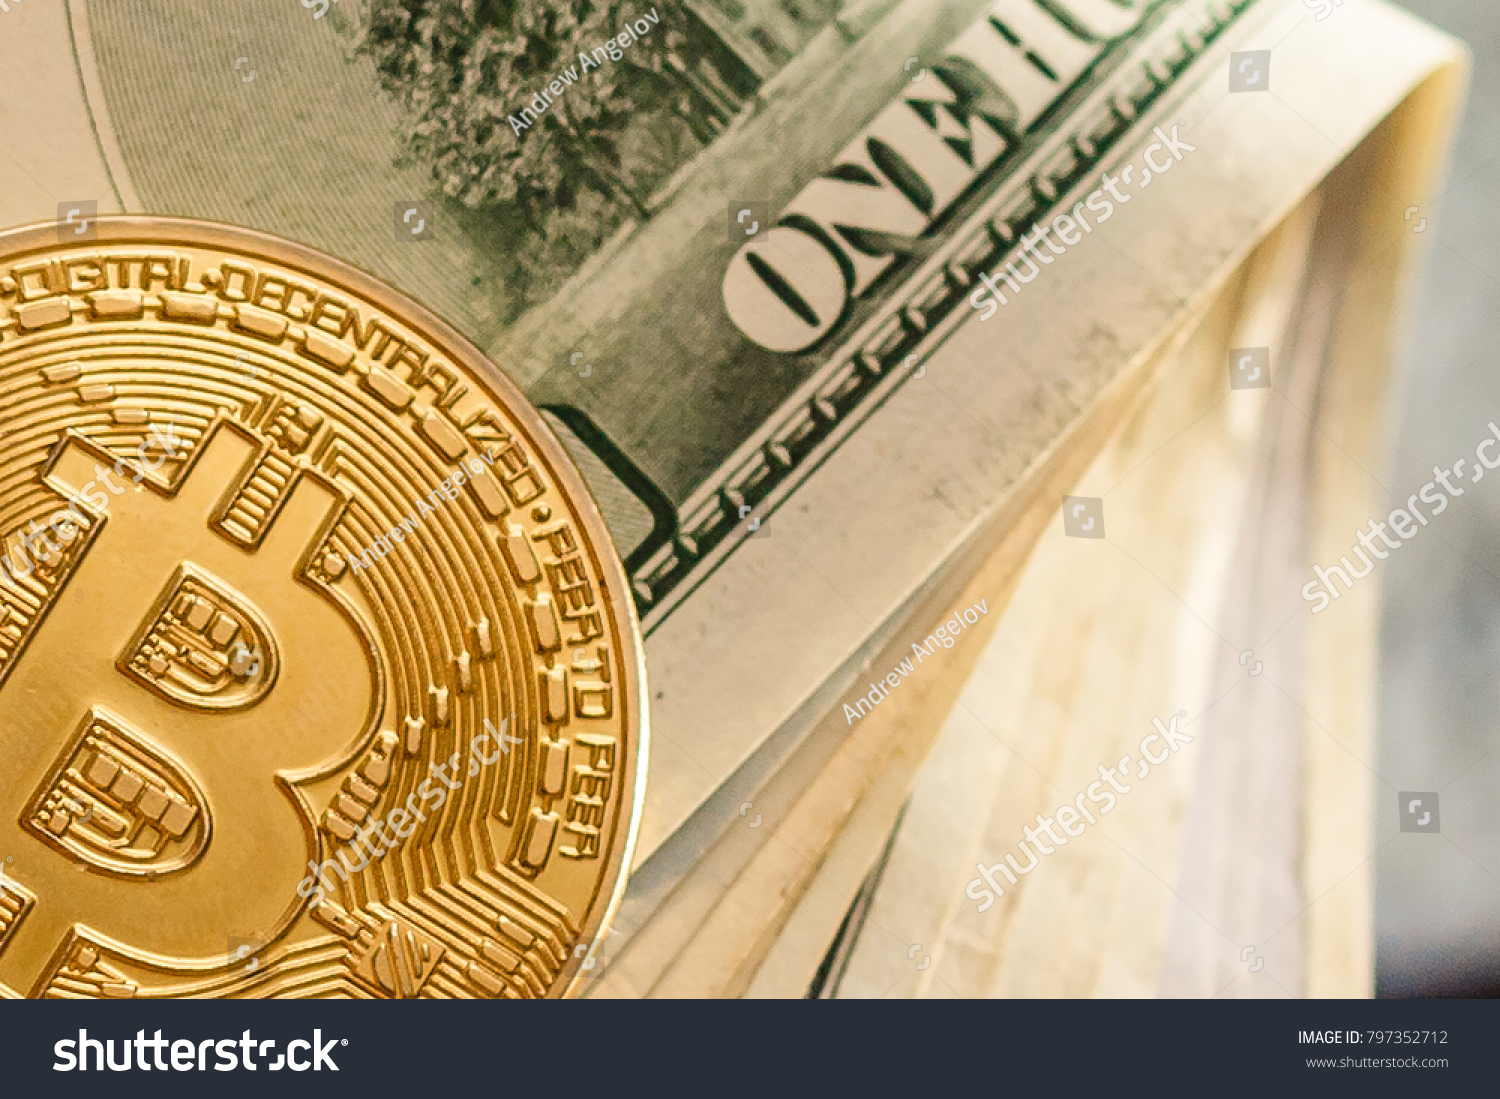 Bitcoin dollar btc market symbol cryptocurrency stock photo bitcoin and dollar btc market symbol cryptocurrency rising above the united states dollar gold biocorpaavc Images